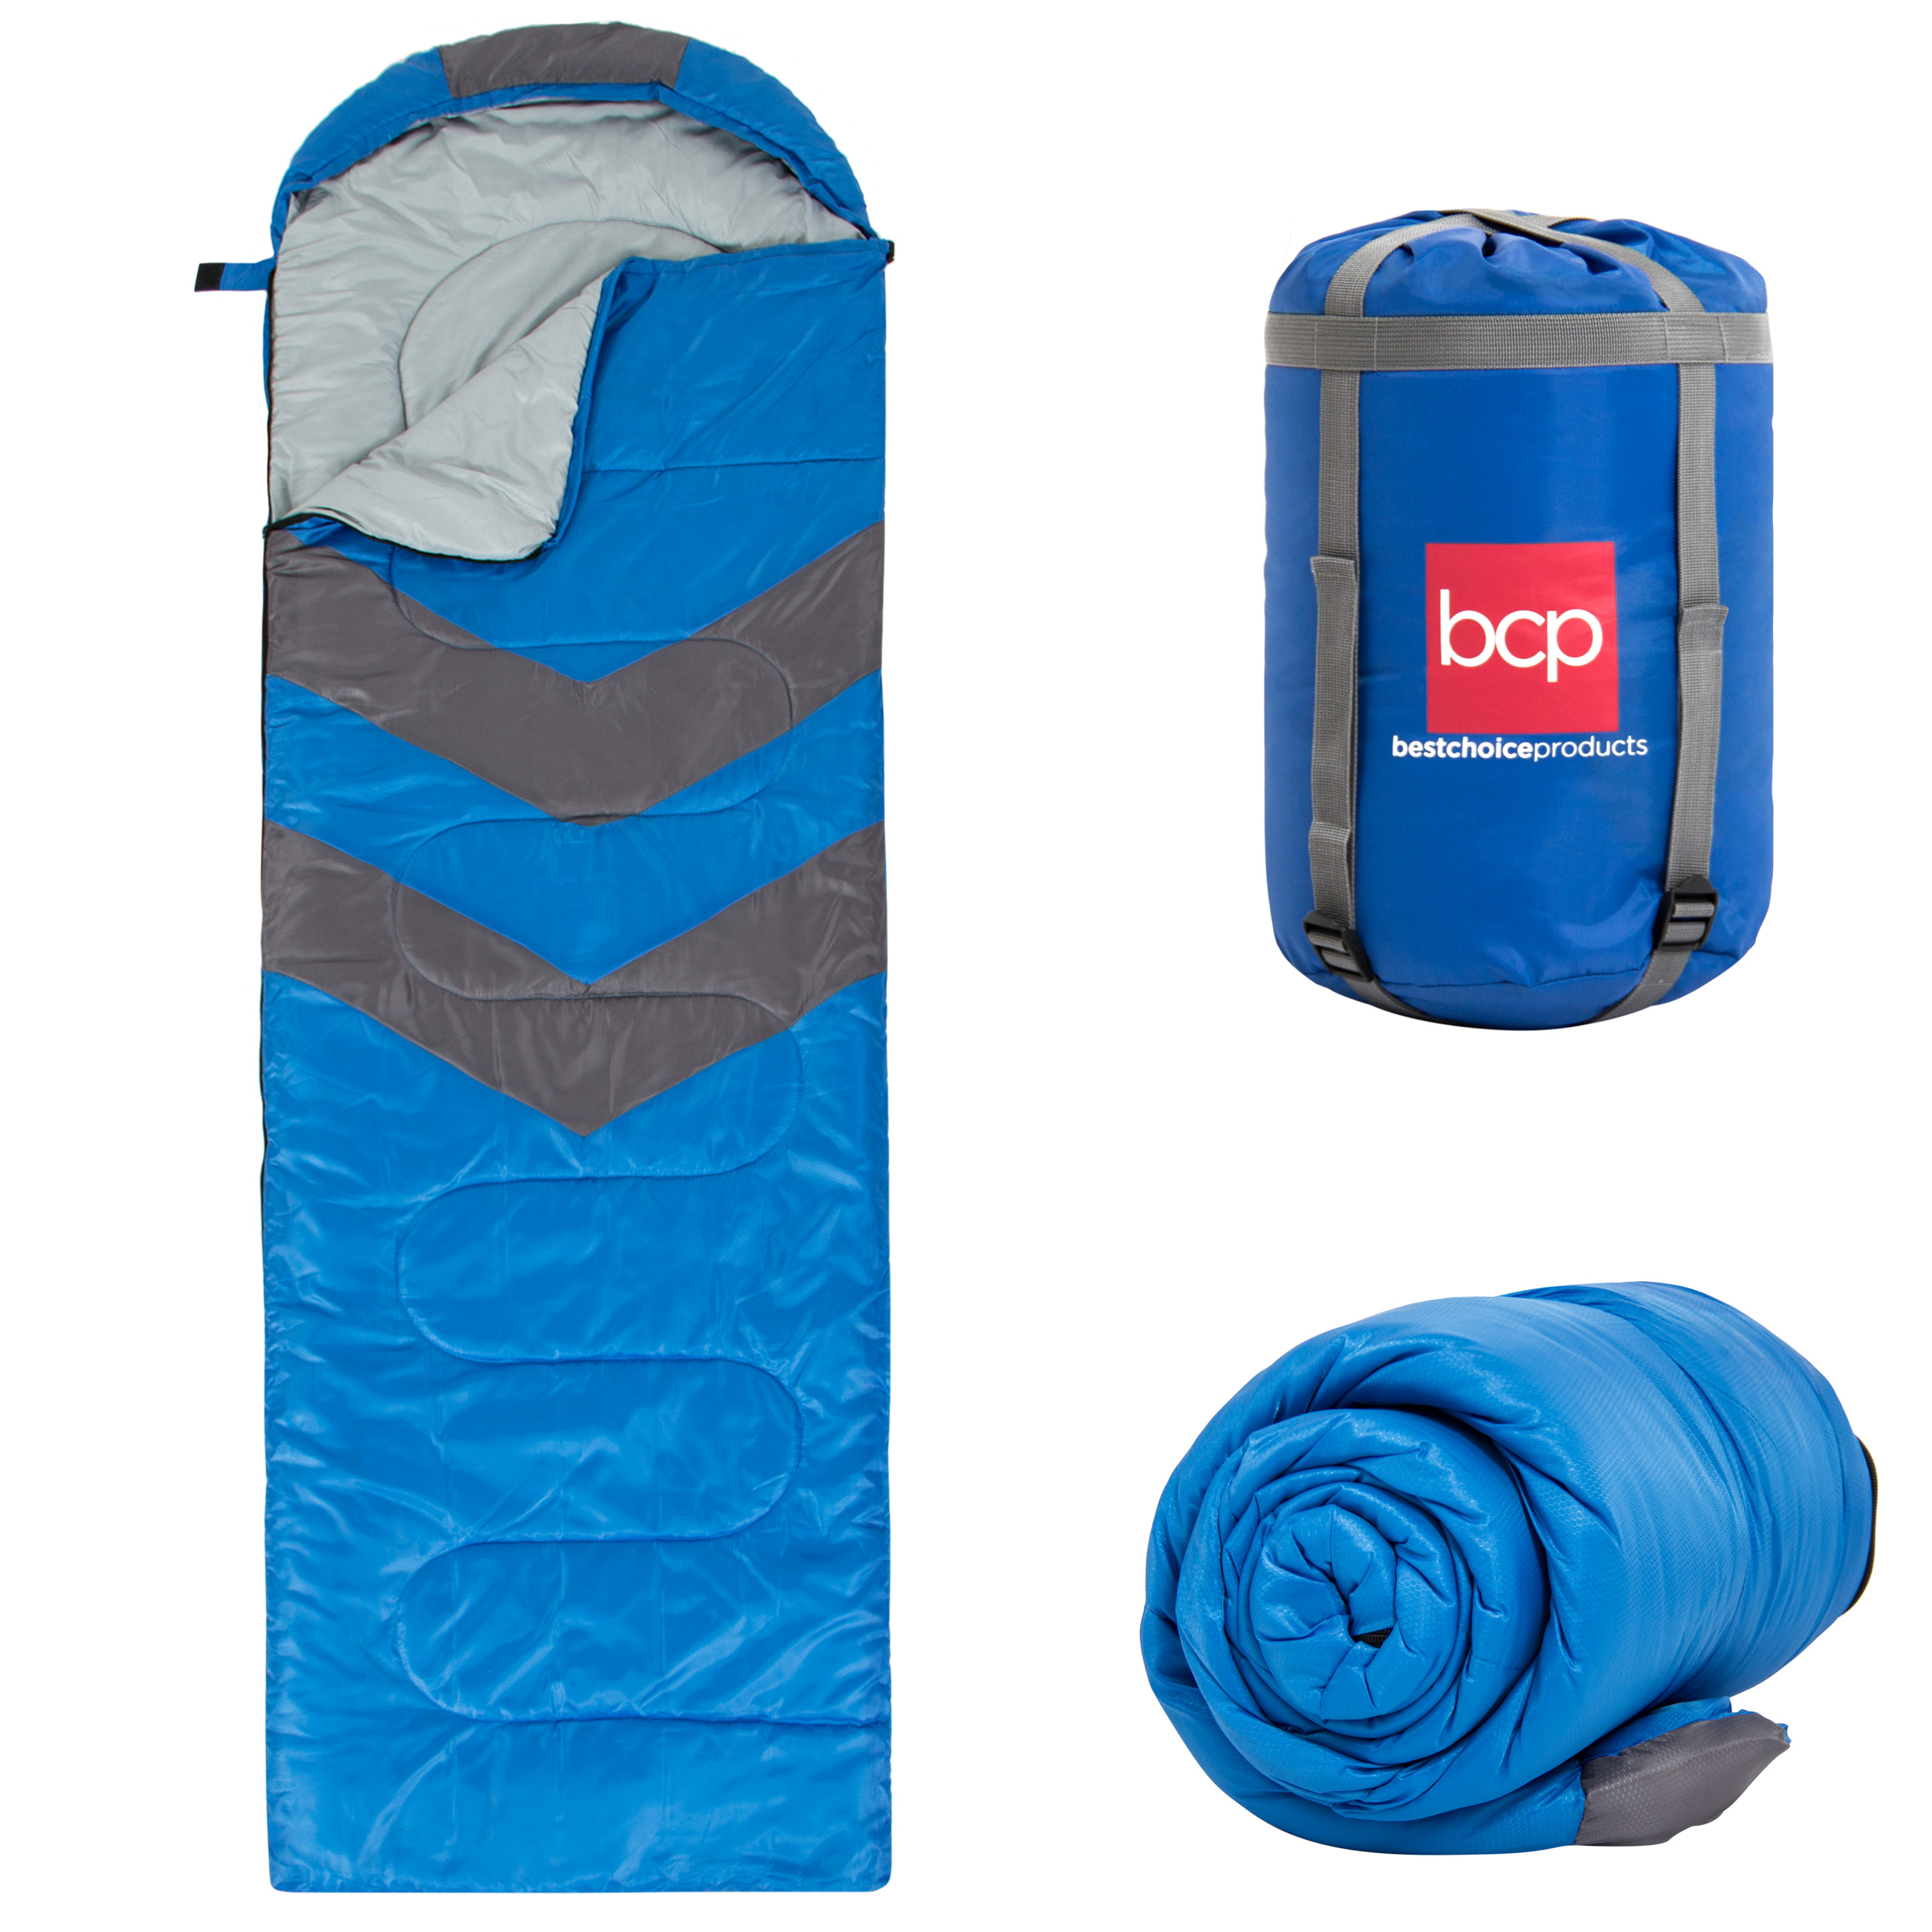 Best Choice Products 4-Season Water-Resistant 20F Portable Envelope Sleeping Bag Compression Sack Carrying Case by Best Choice Products